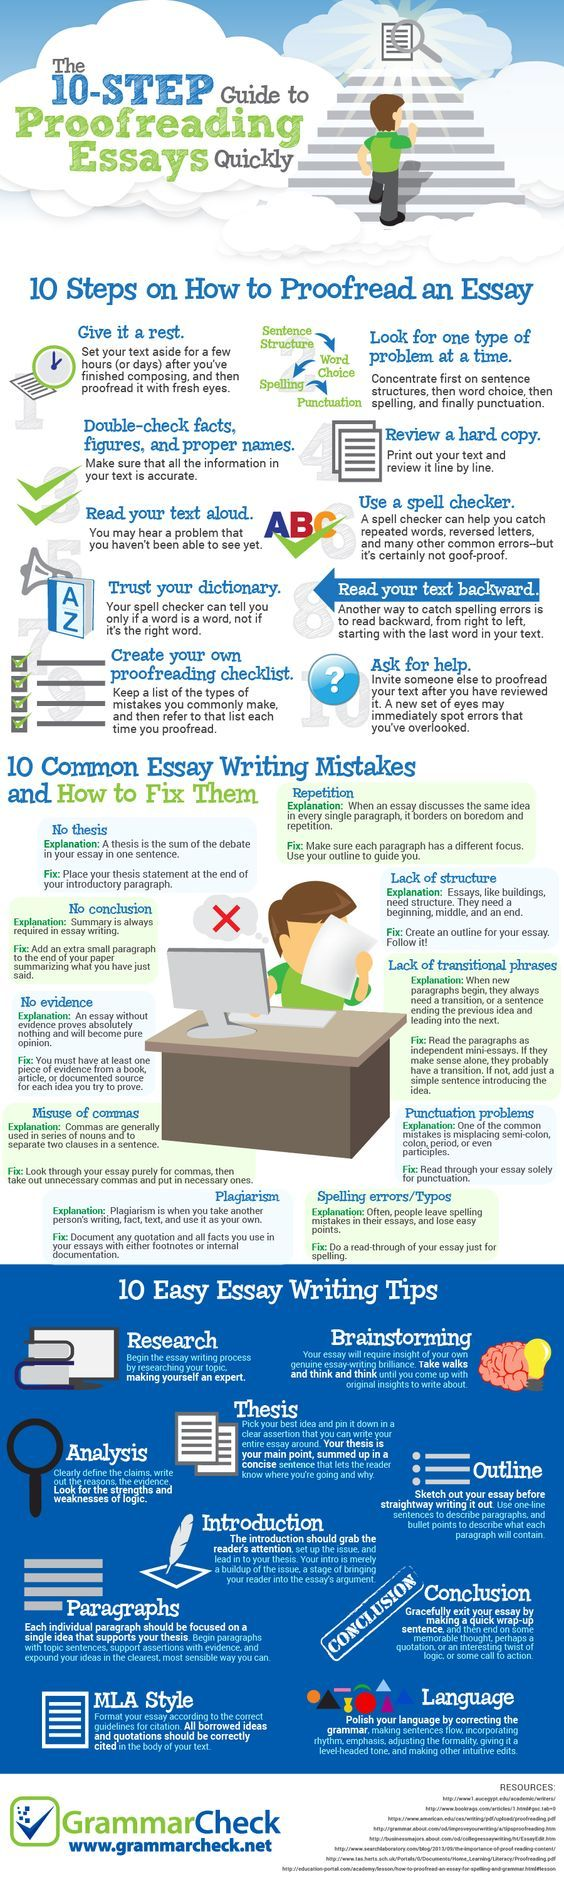 best way proofread essay 7 effective ways to proofread writing there are many different ways to proofread writing how to proofread an essay: the ultimate guide for 2018.